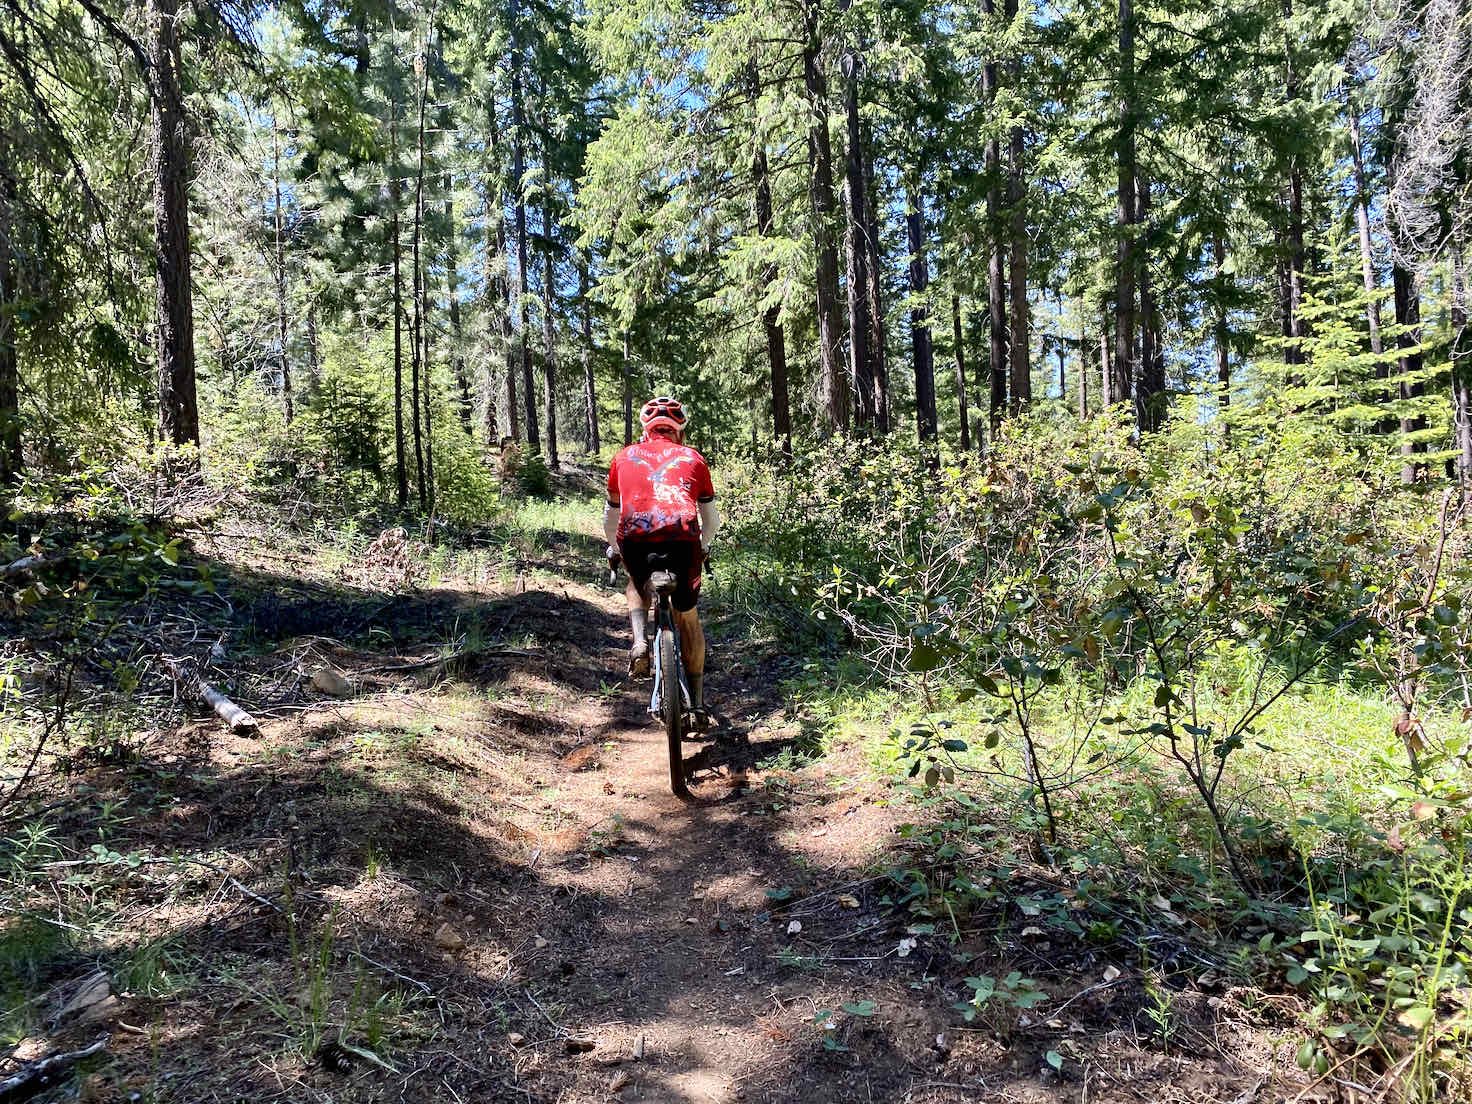 A view of some of the double-track trail along Black Butte with cyclist on trail.